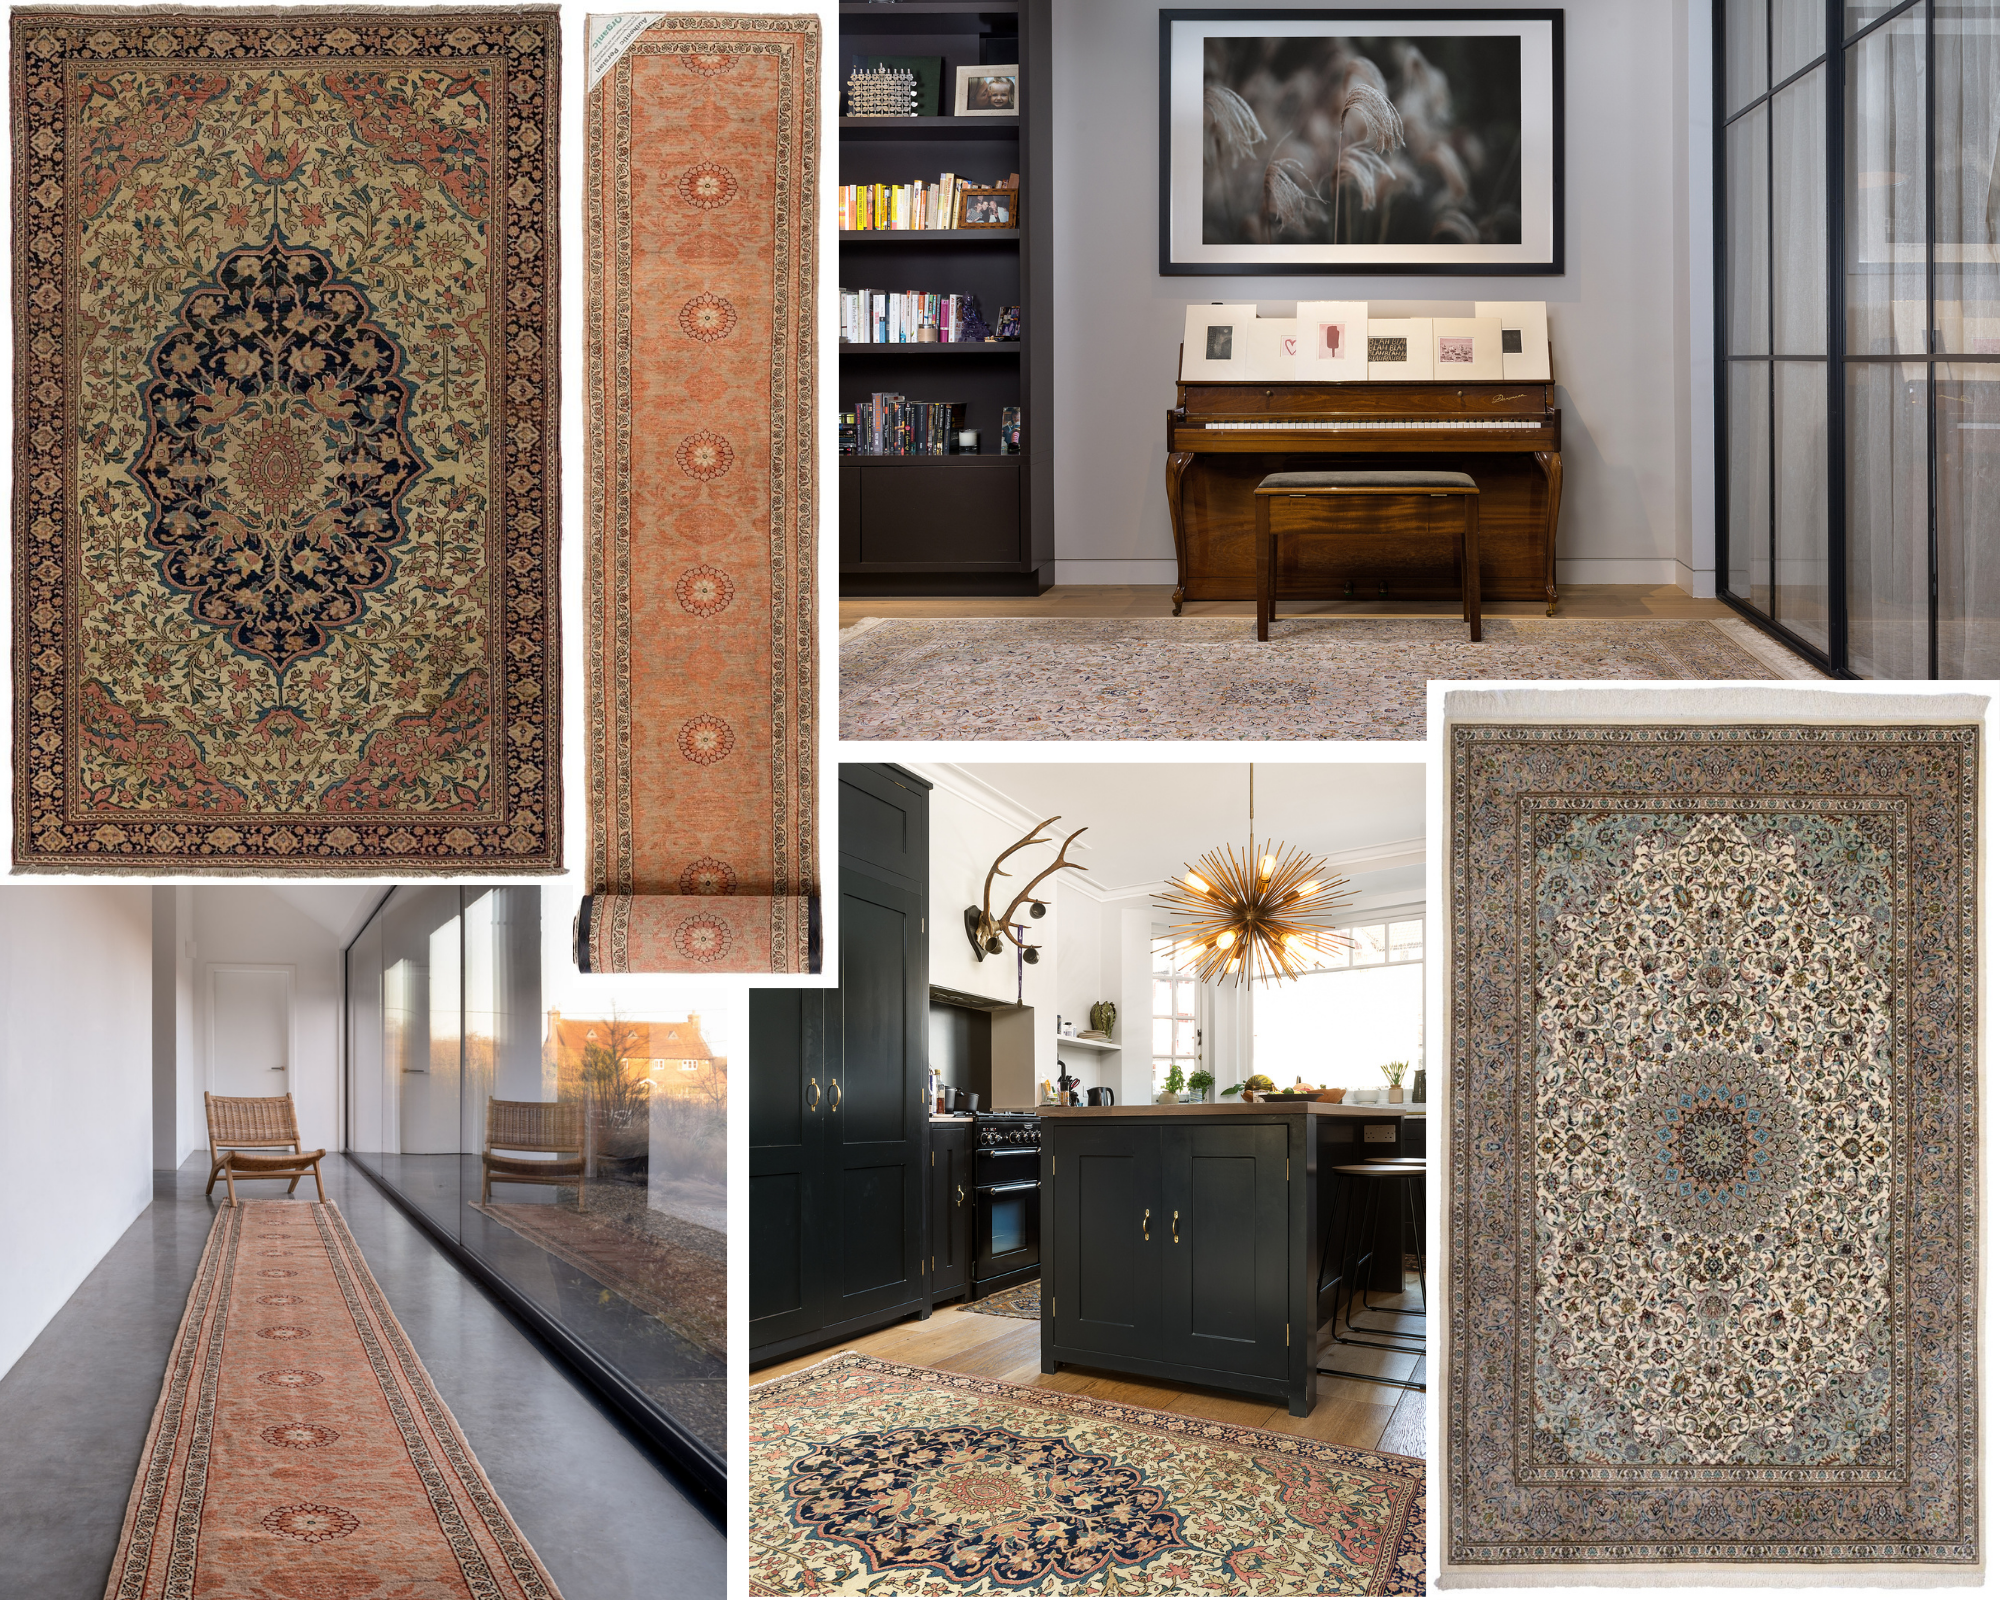 Persian rugs, oriental rugs, interior design, home decor, home accessories, cyber monday, sales weekend, shop small, london rugs, rug collections, statement rugs